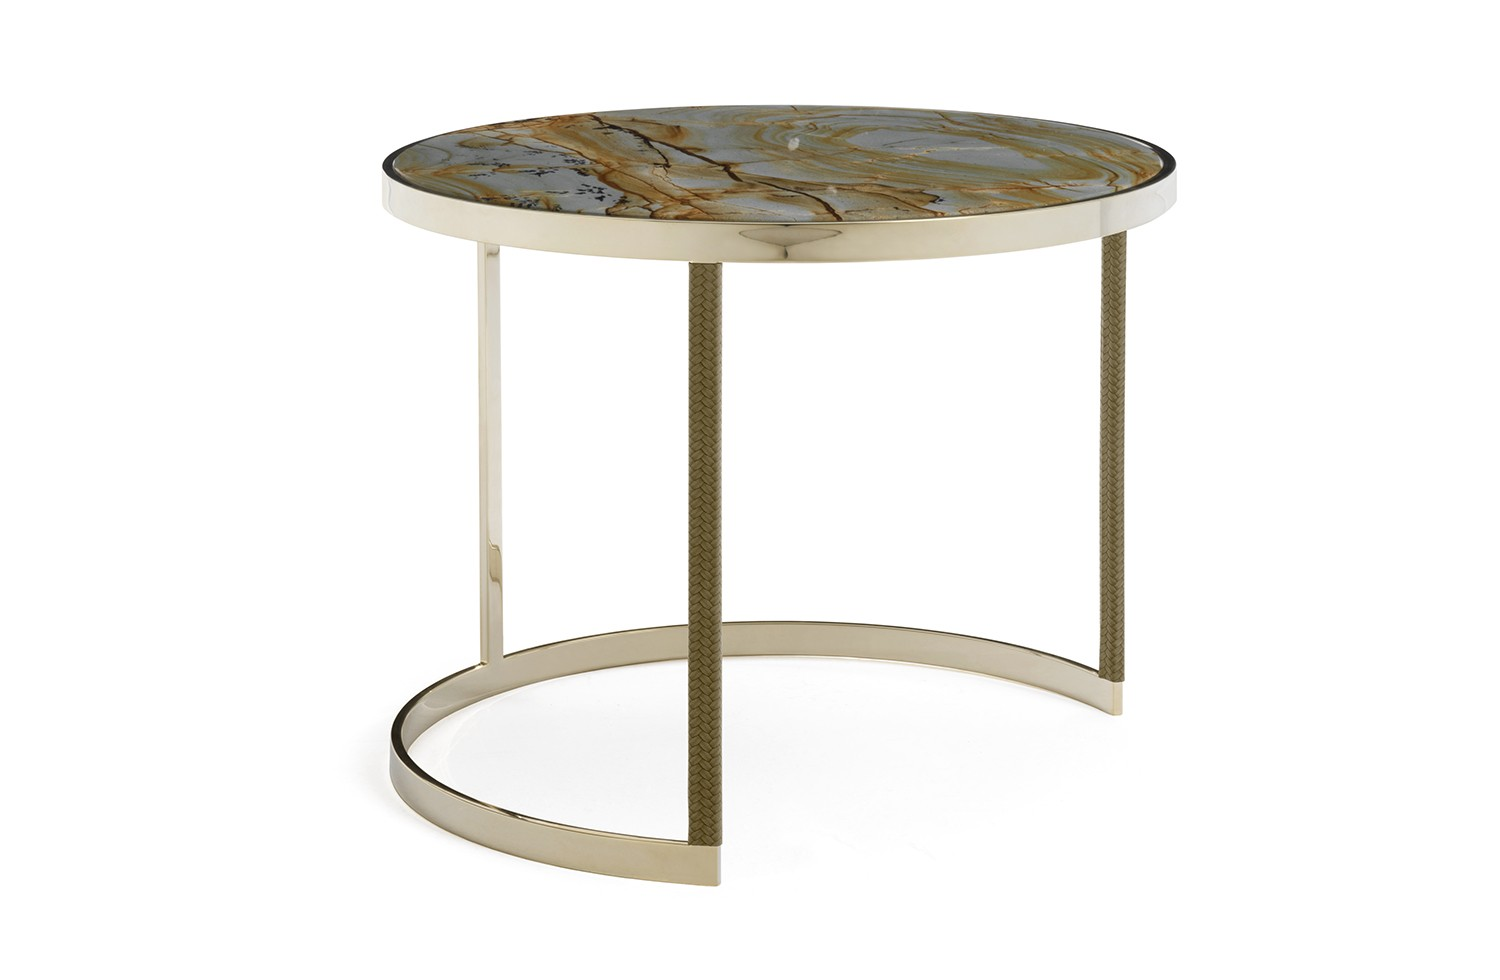 gold marble accent table granfiocco amerigo milano tavolino fiocco modello struttura pelle militare marmo roma imperiale black piece living room set tablecloth small sideboard